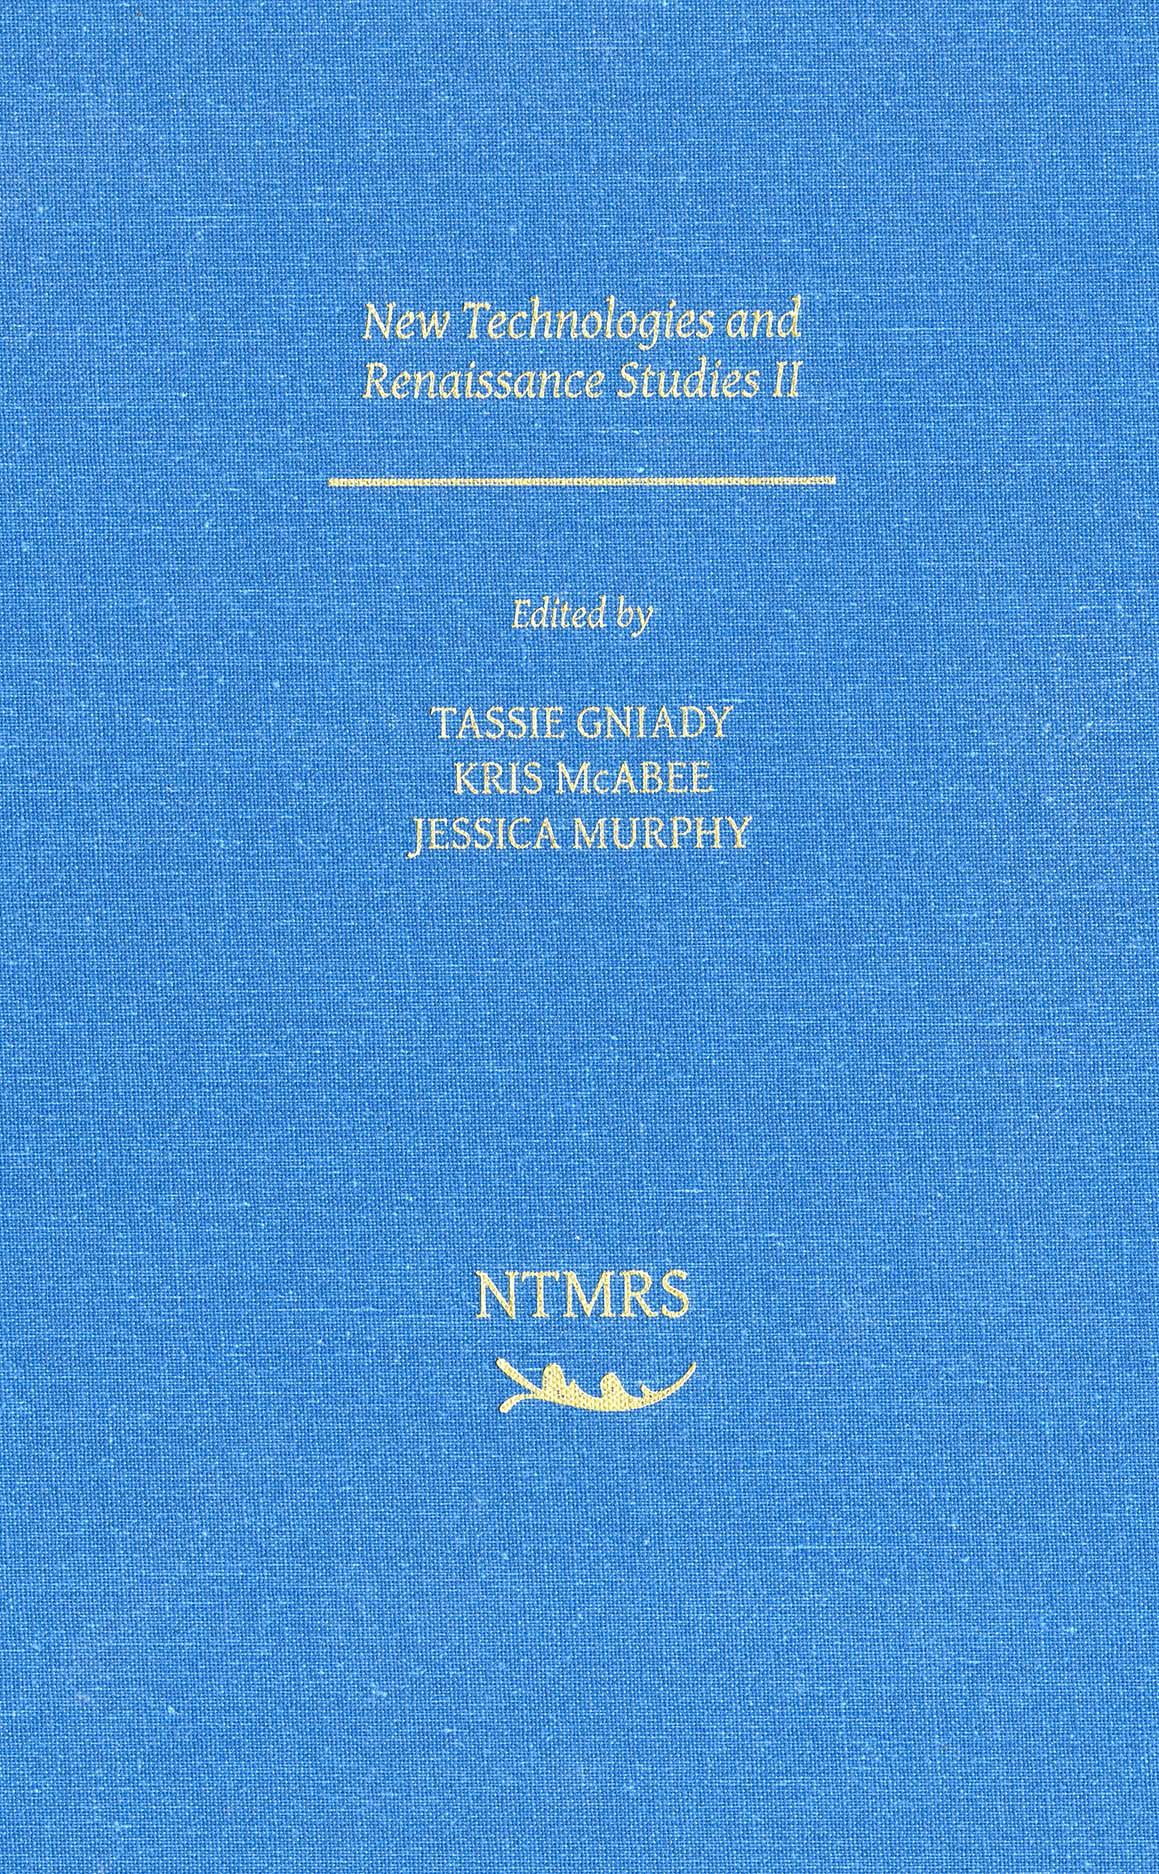 New Technologies and Renaissance Studies II